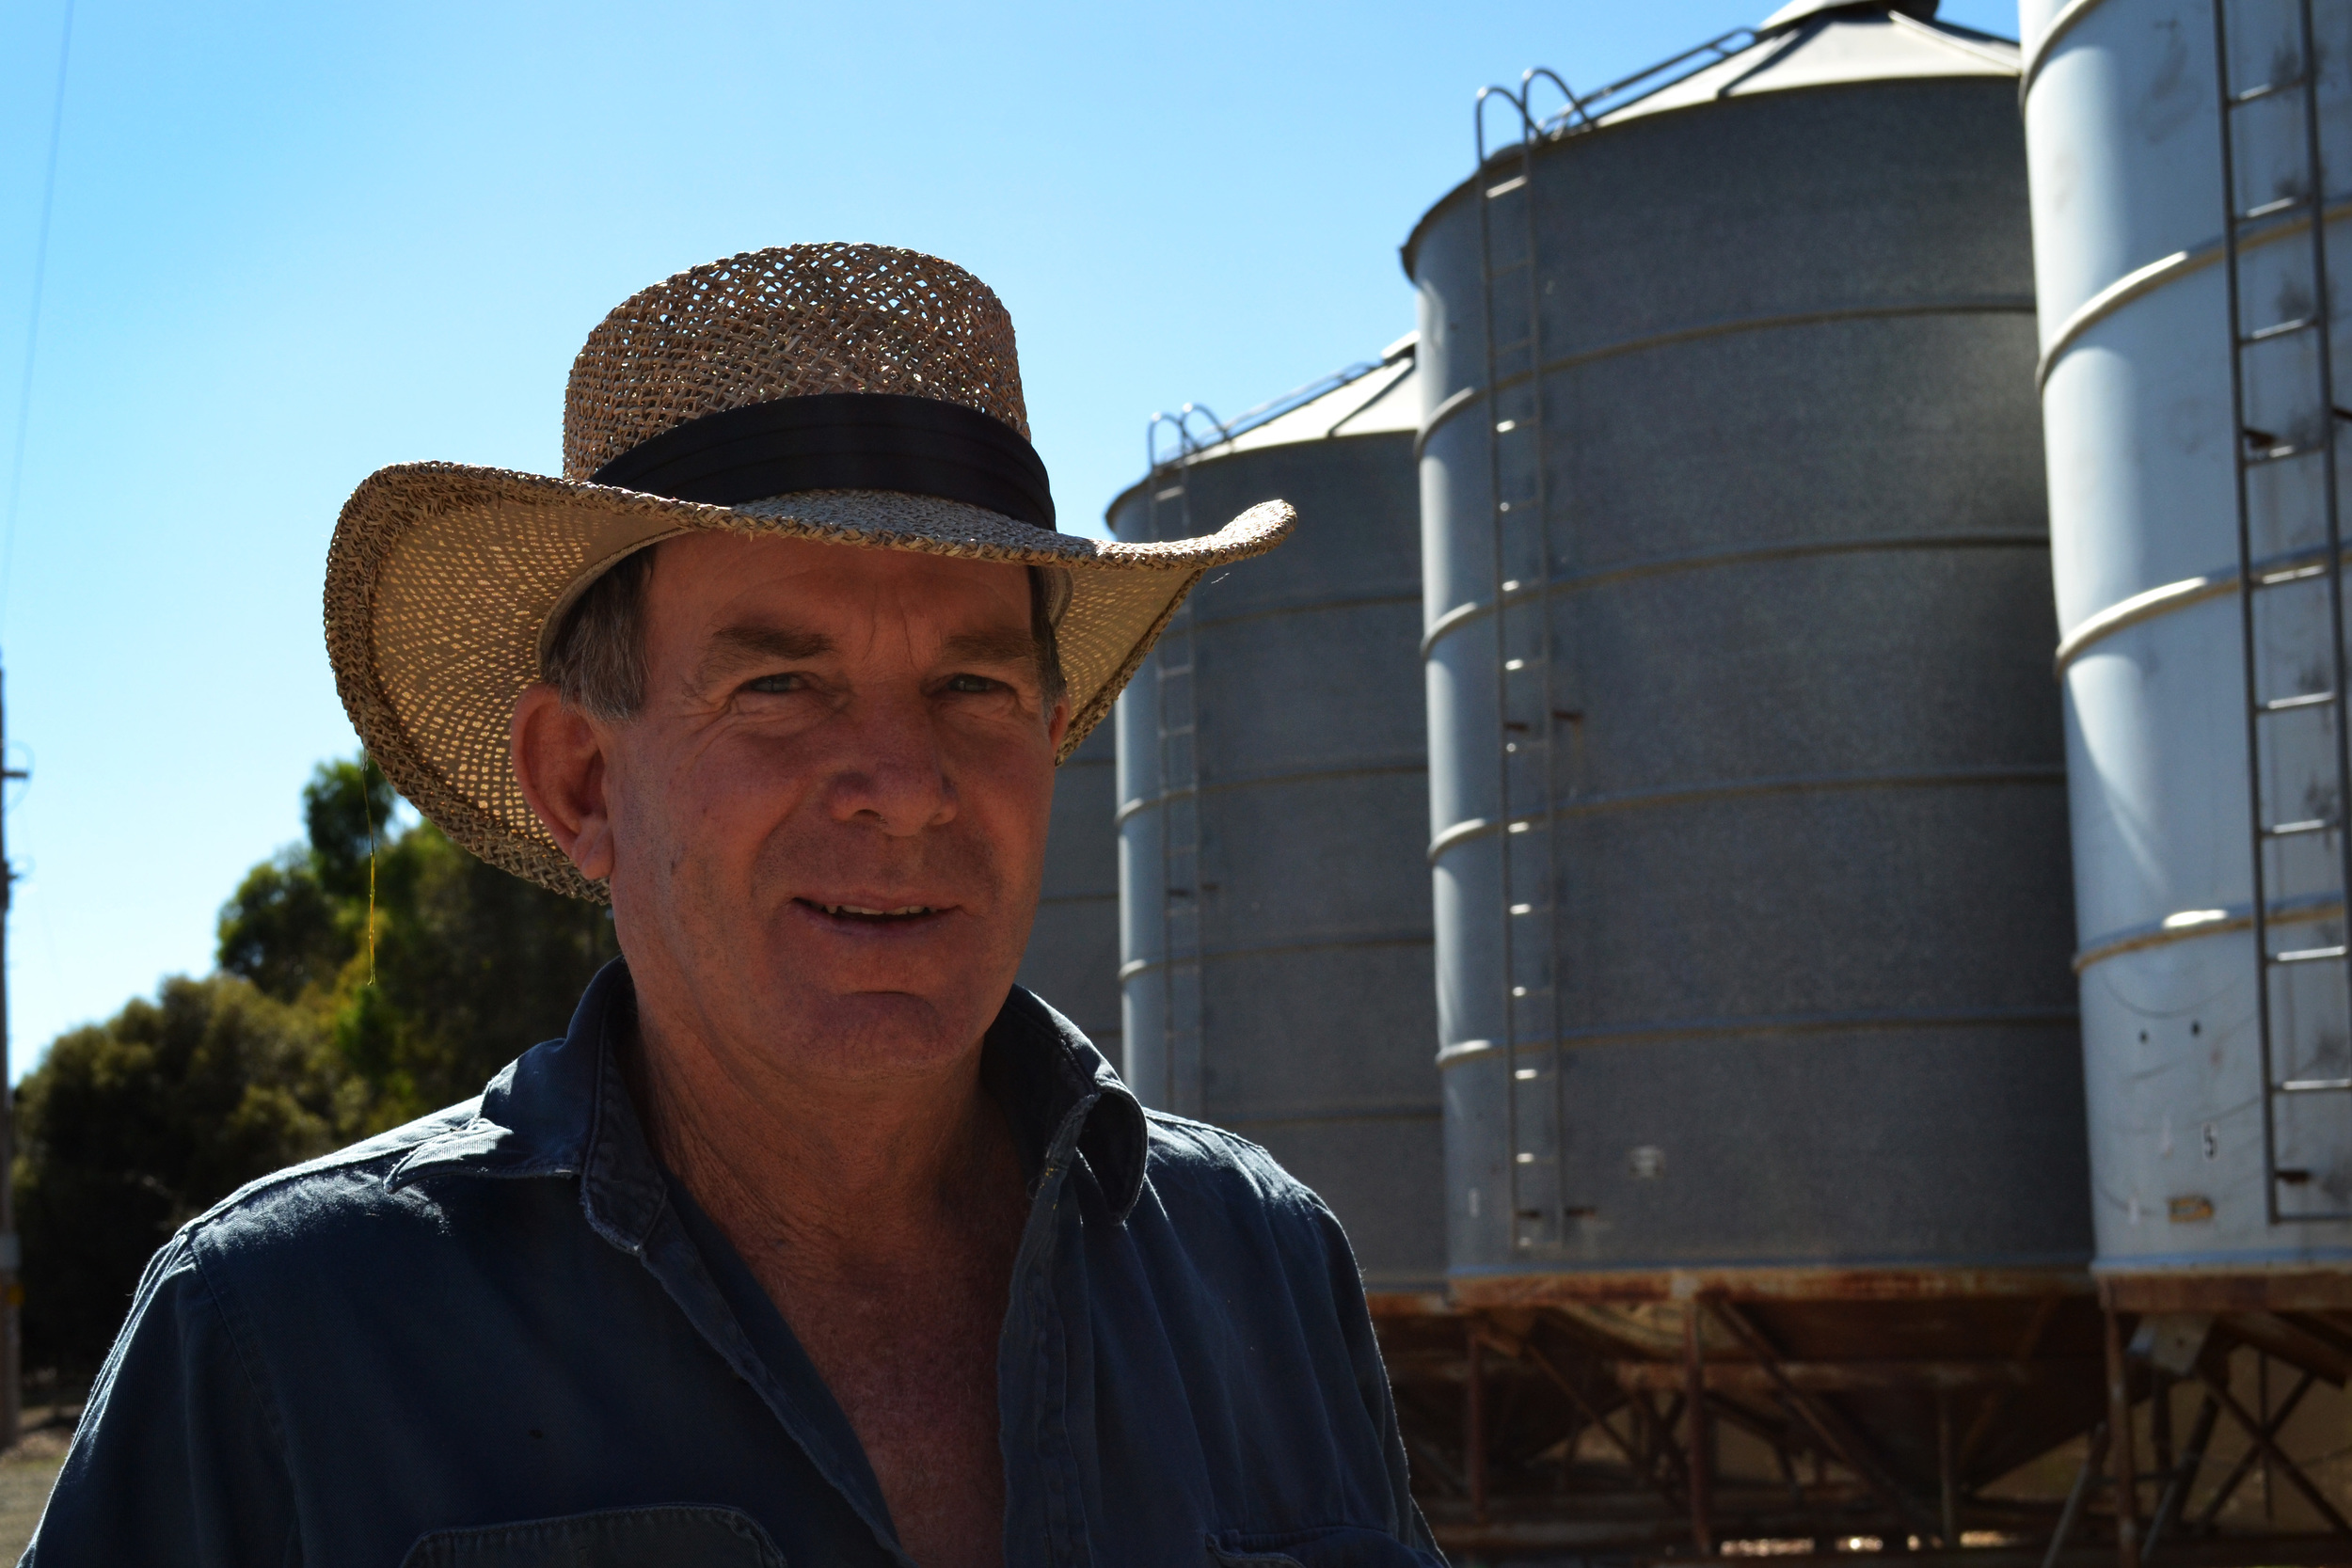 Harvest season: This year's harvest was disappointing for grain farmers like Burramine's Peter Lawless. Picture: Toni Brient.